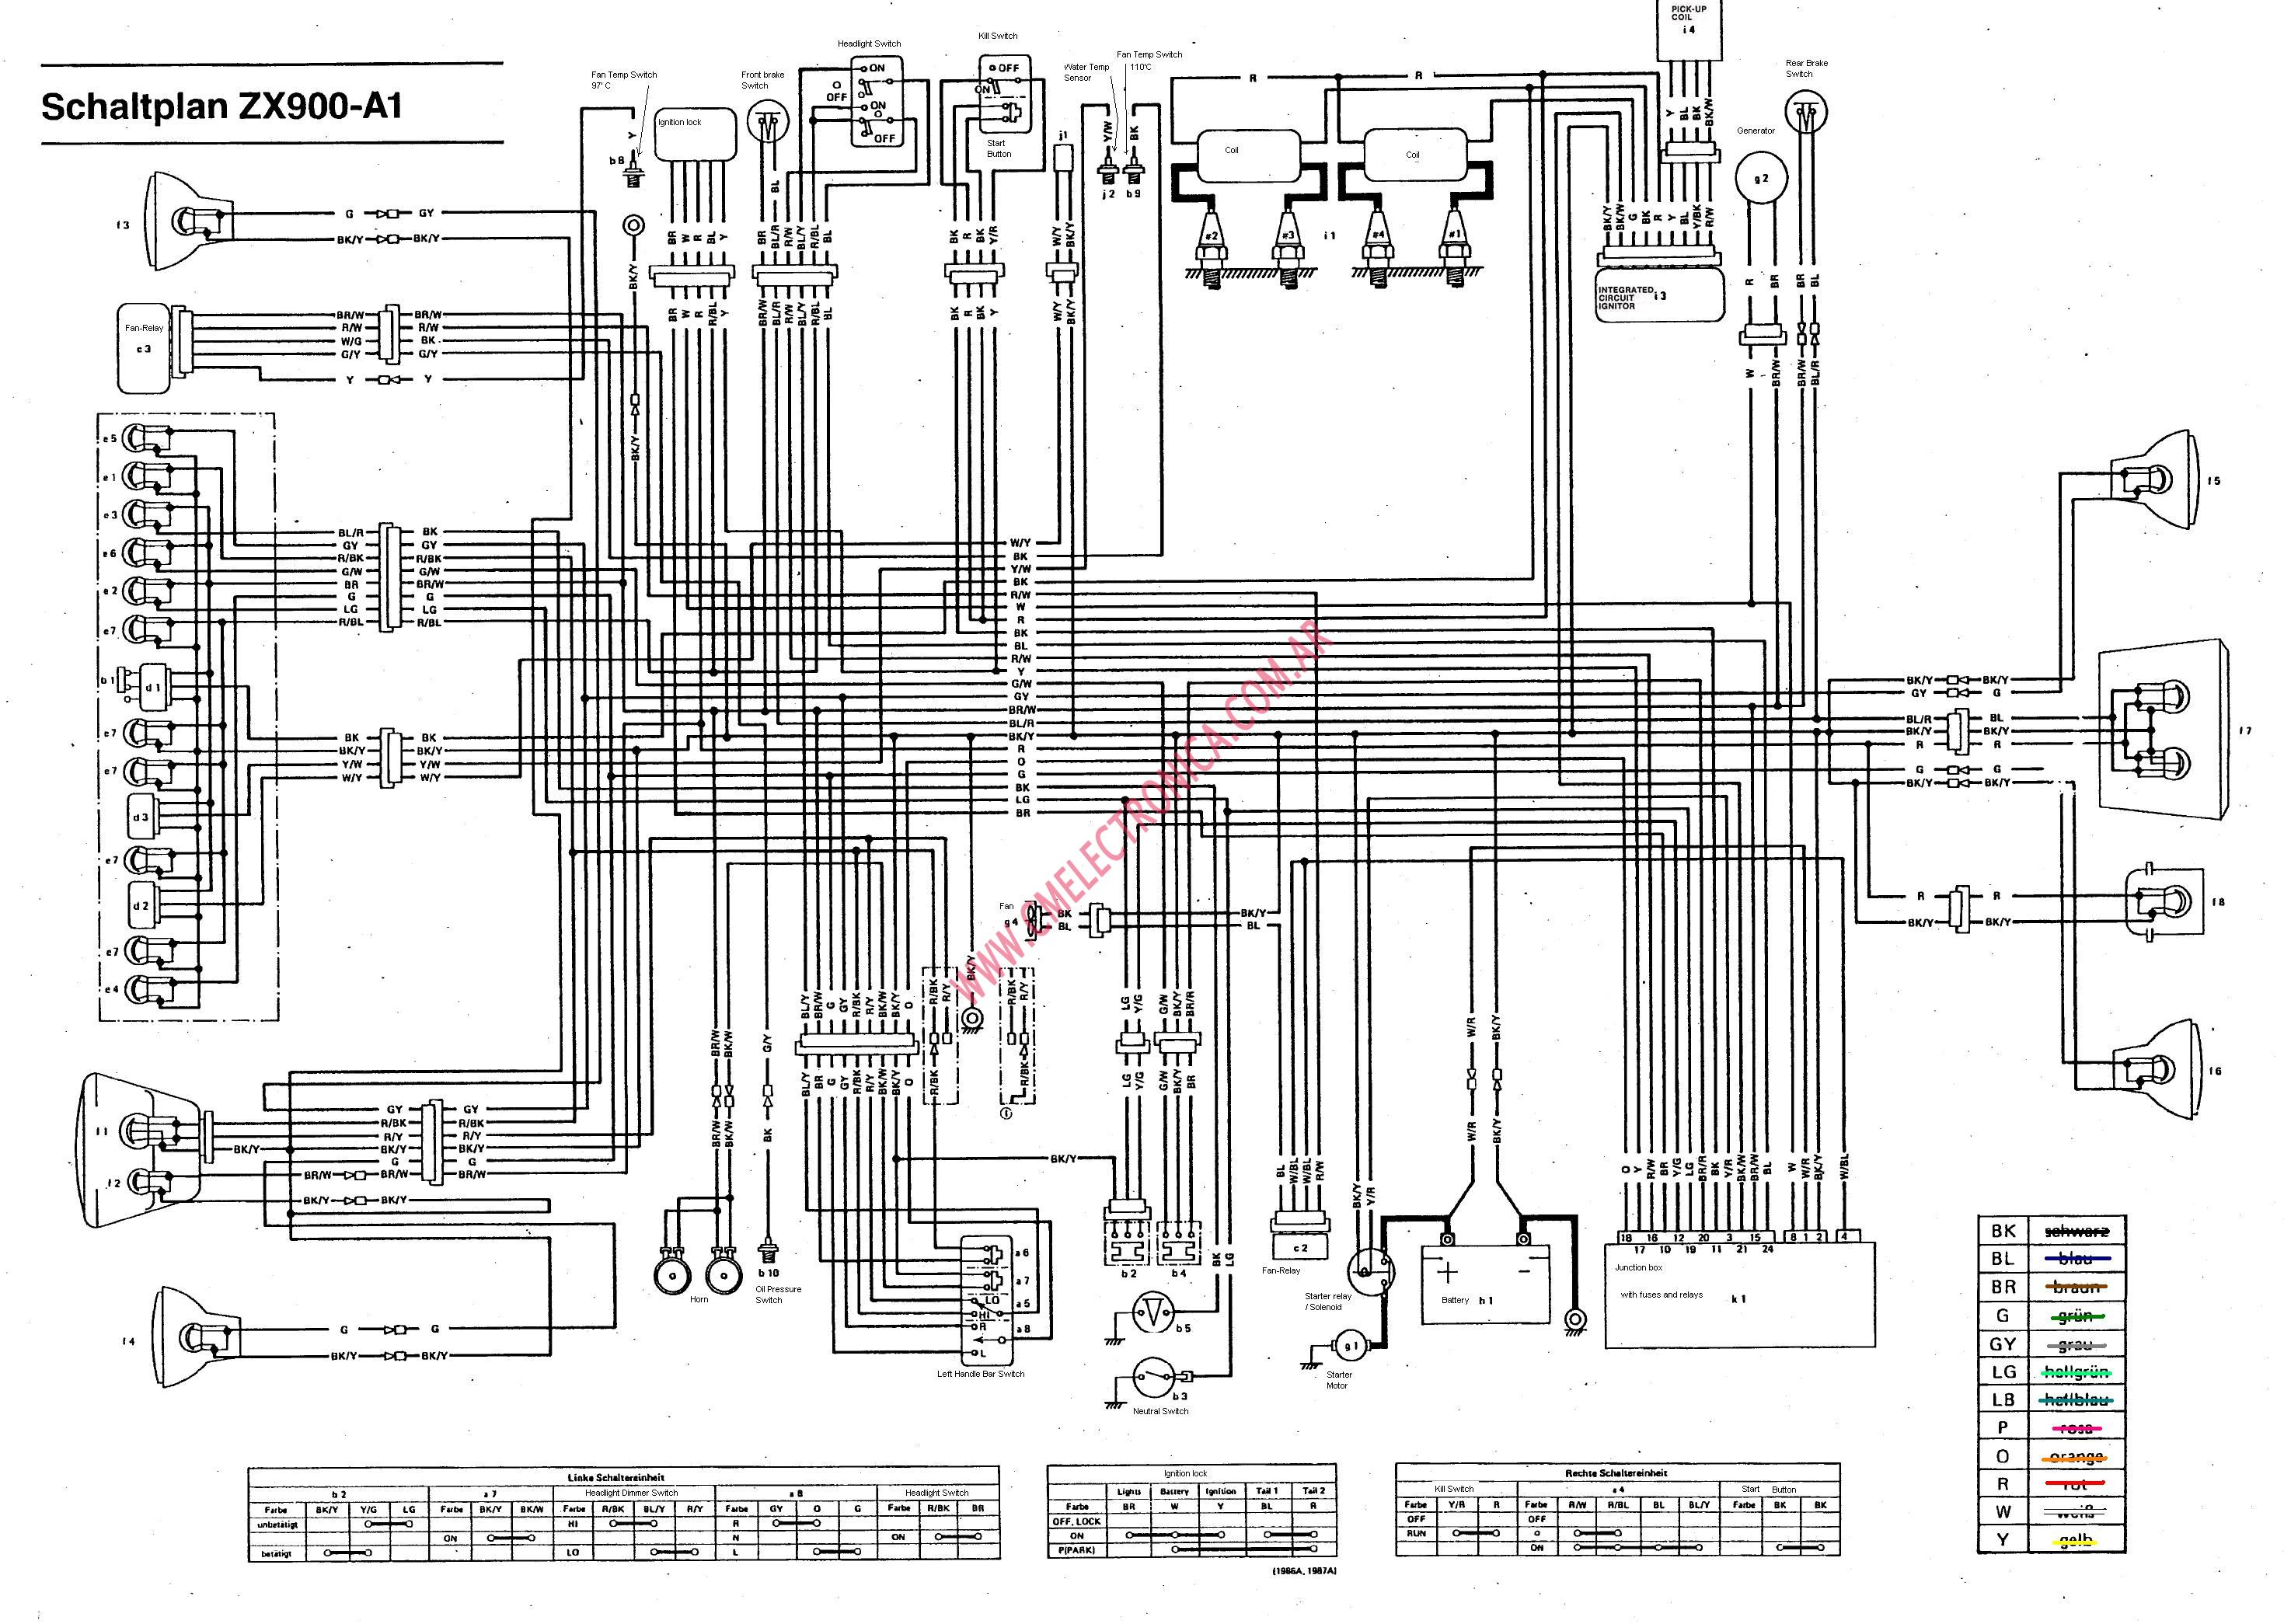 kawasaki gpz900r wiring diagram kawasaki s3 wiring diagram gpz 900 wiring problem - biker.ie forums